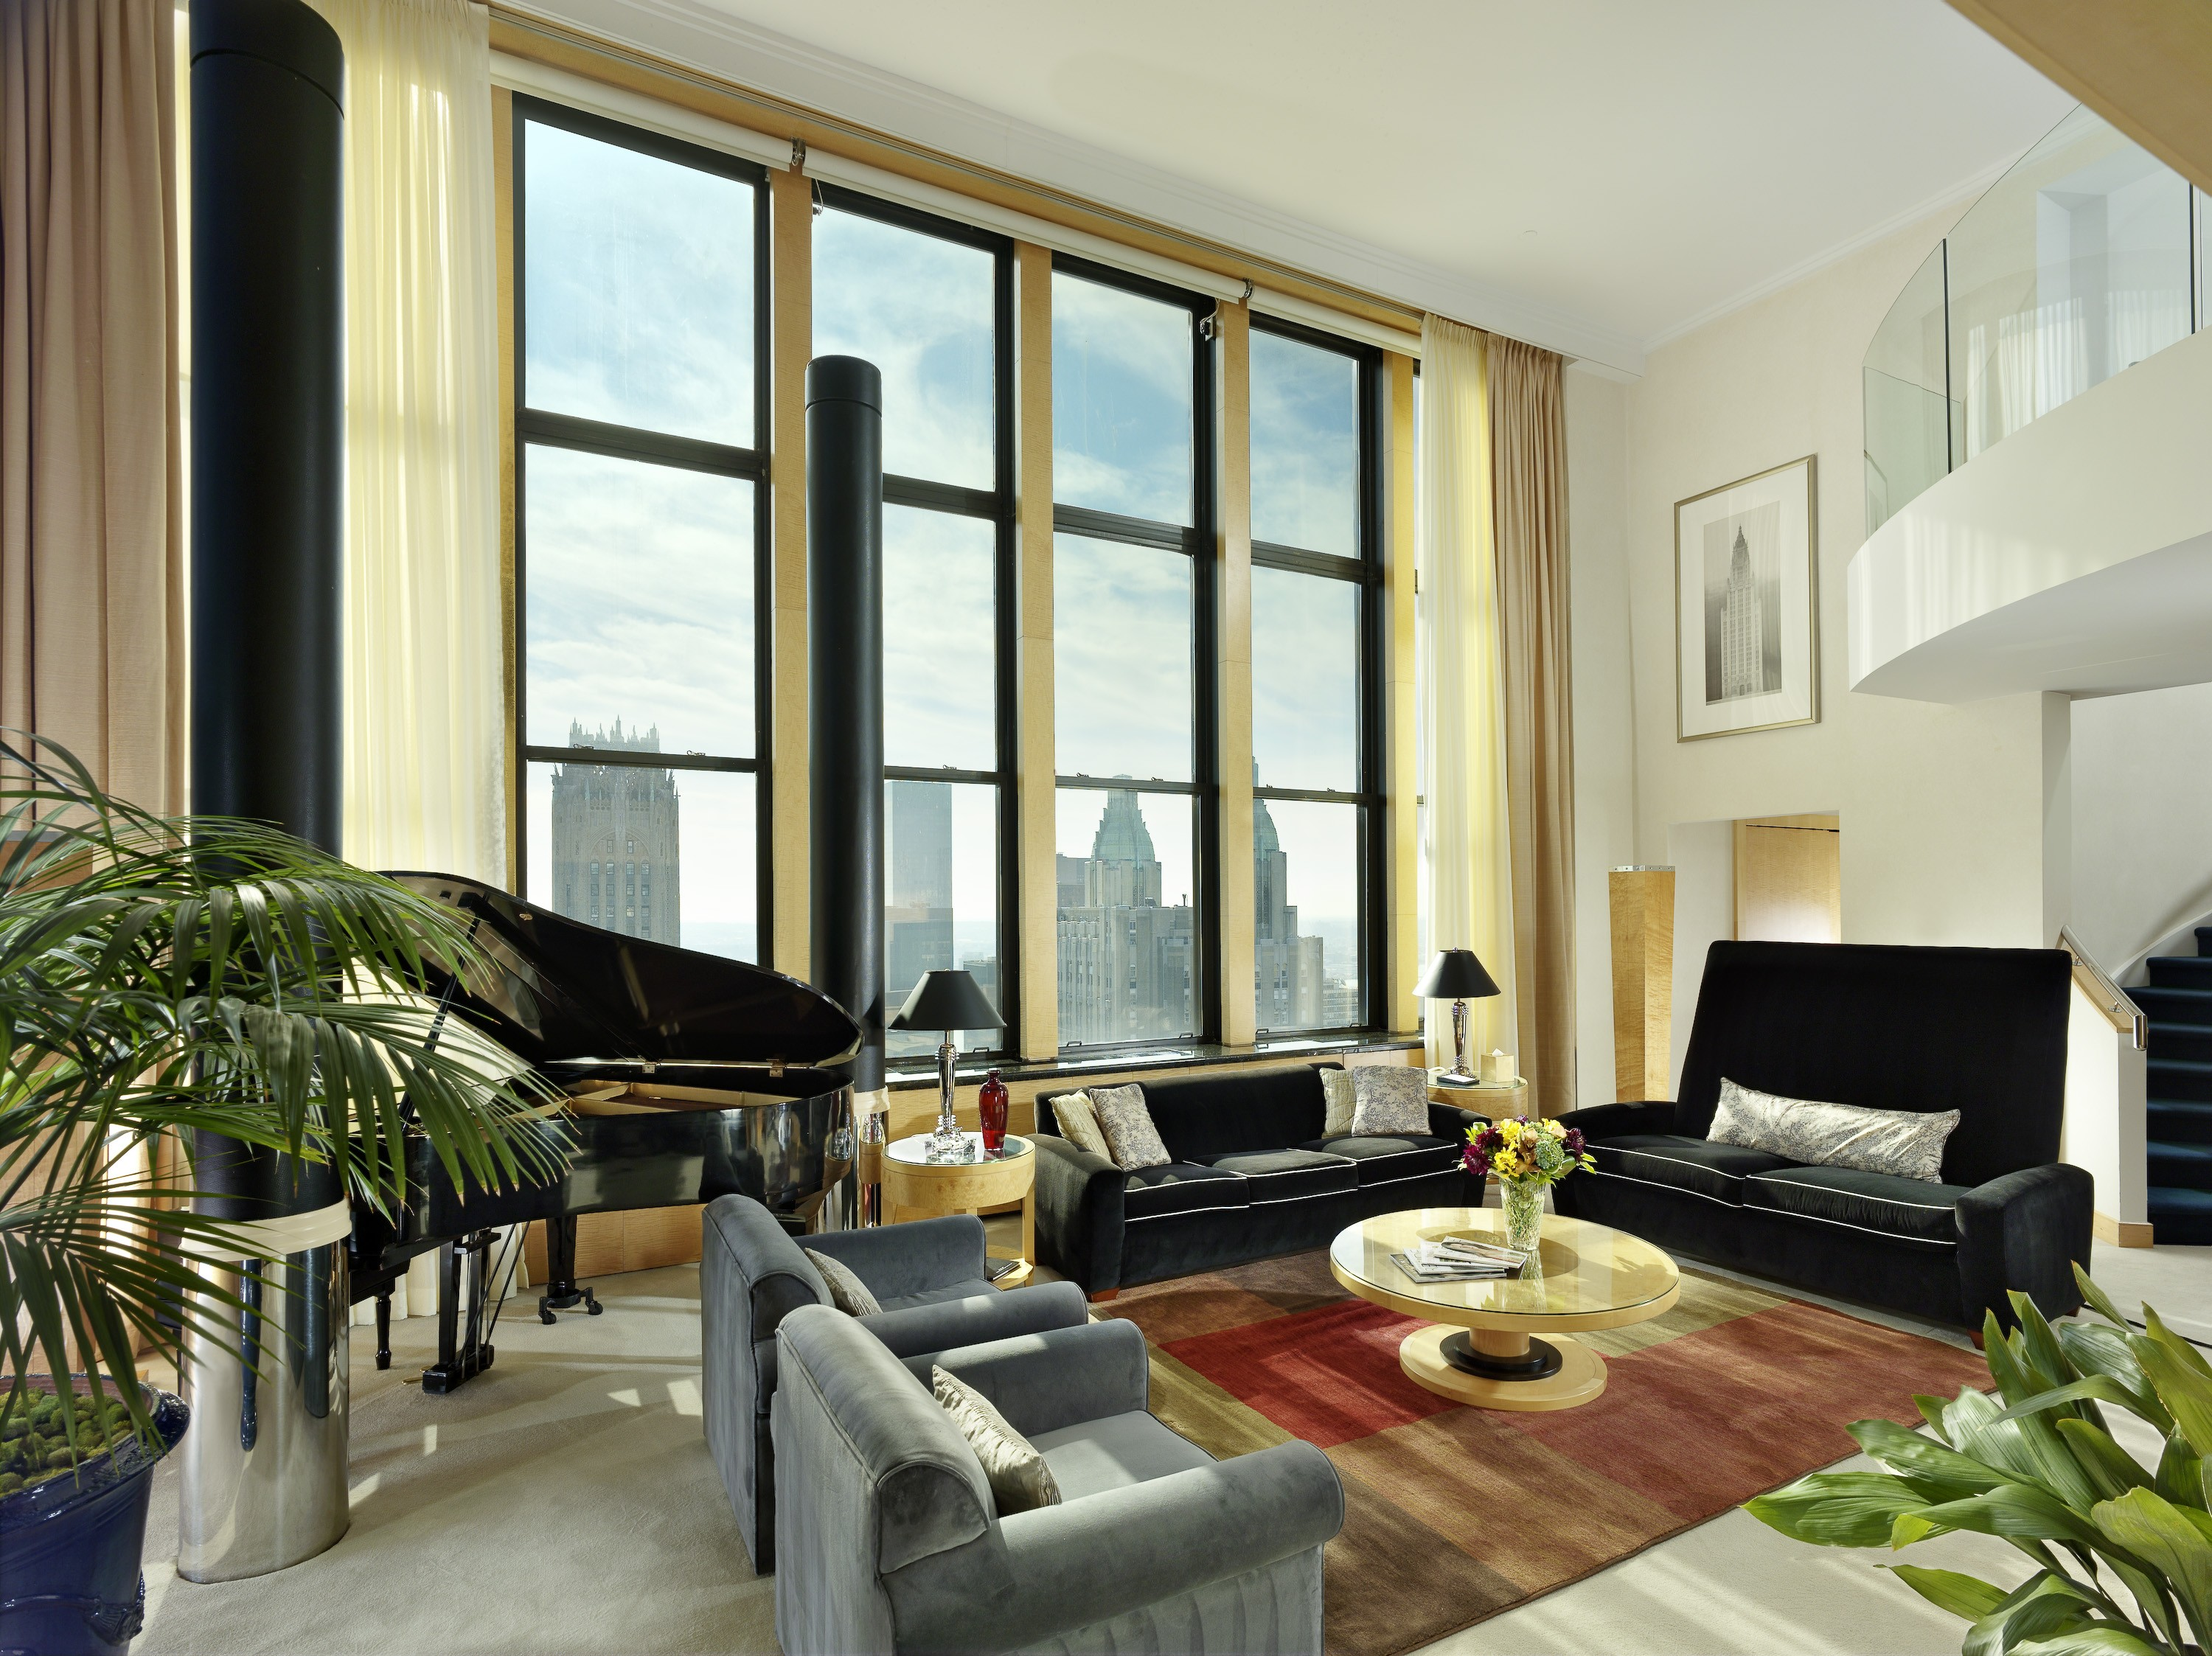 New York City Hotel News